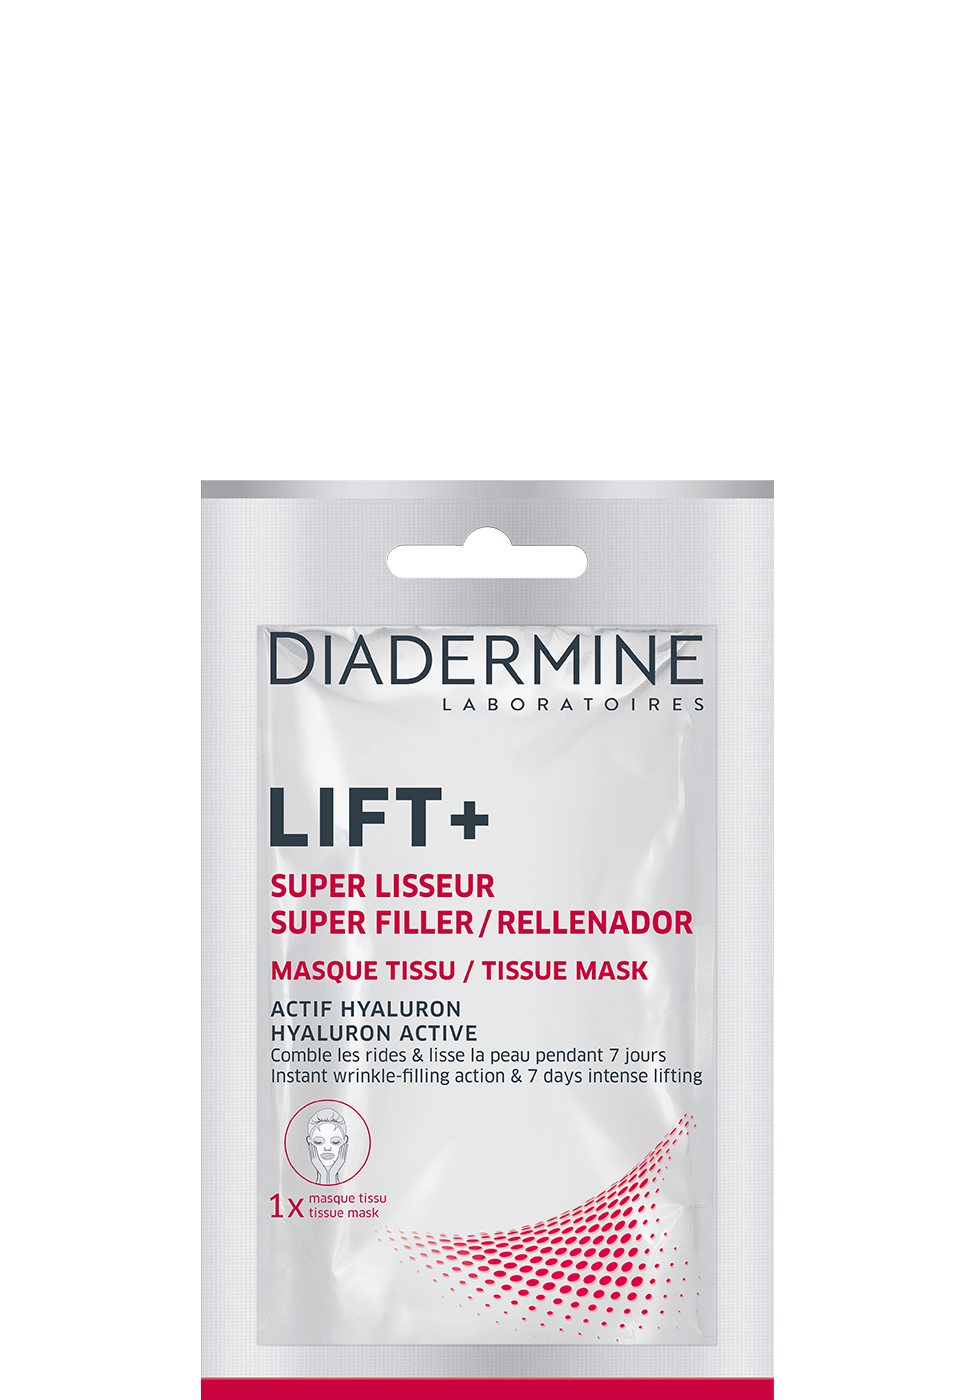 diadermine_at_lift_plus_super_lisseur_970x1400